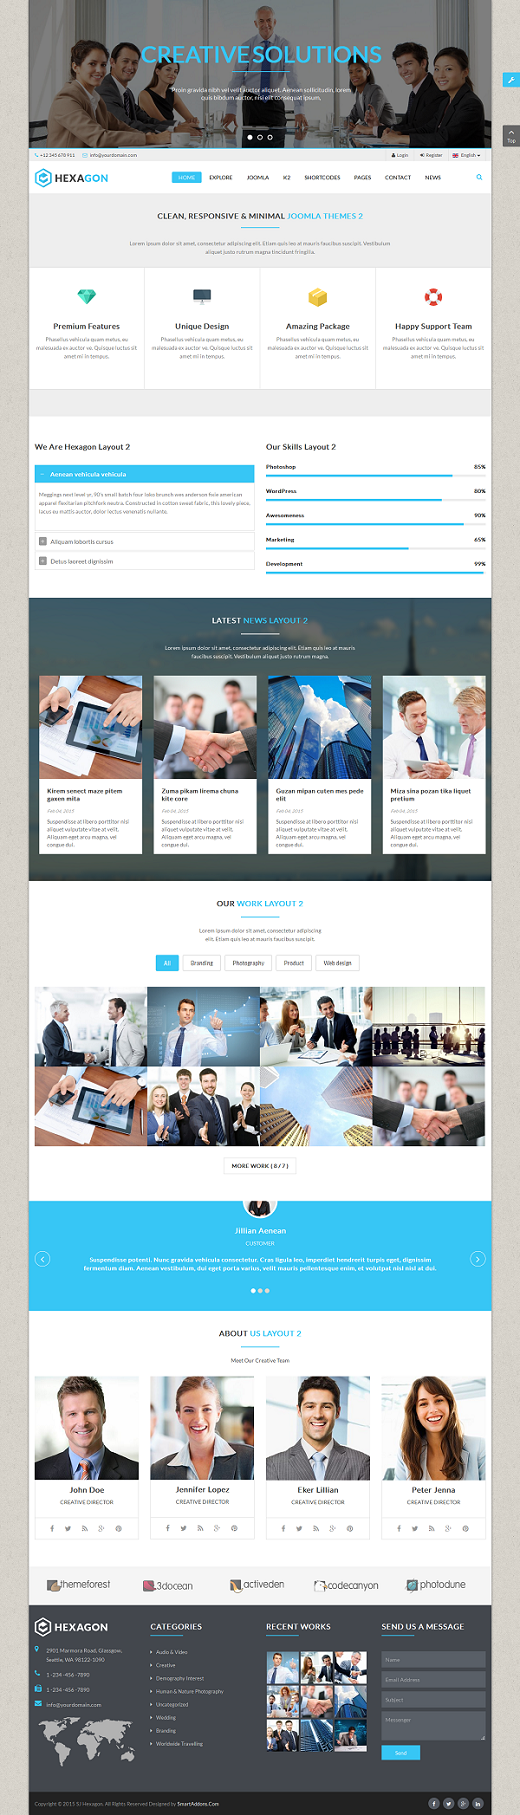 SJ Hexagon - Responsive Joomla Business Template - 05_layout2-boxed.png